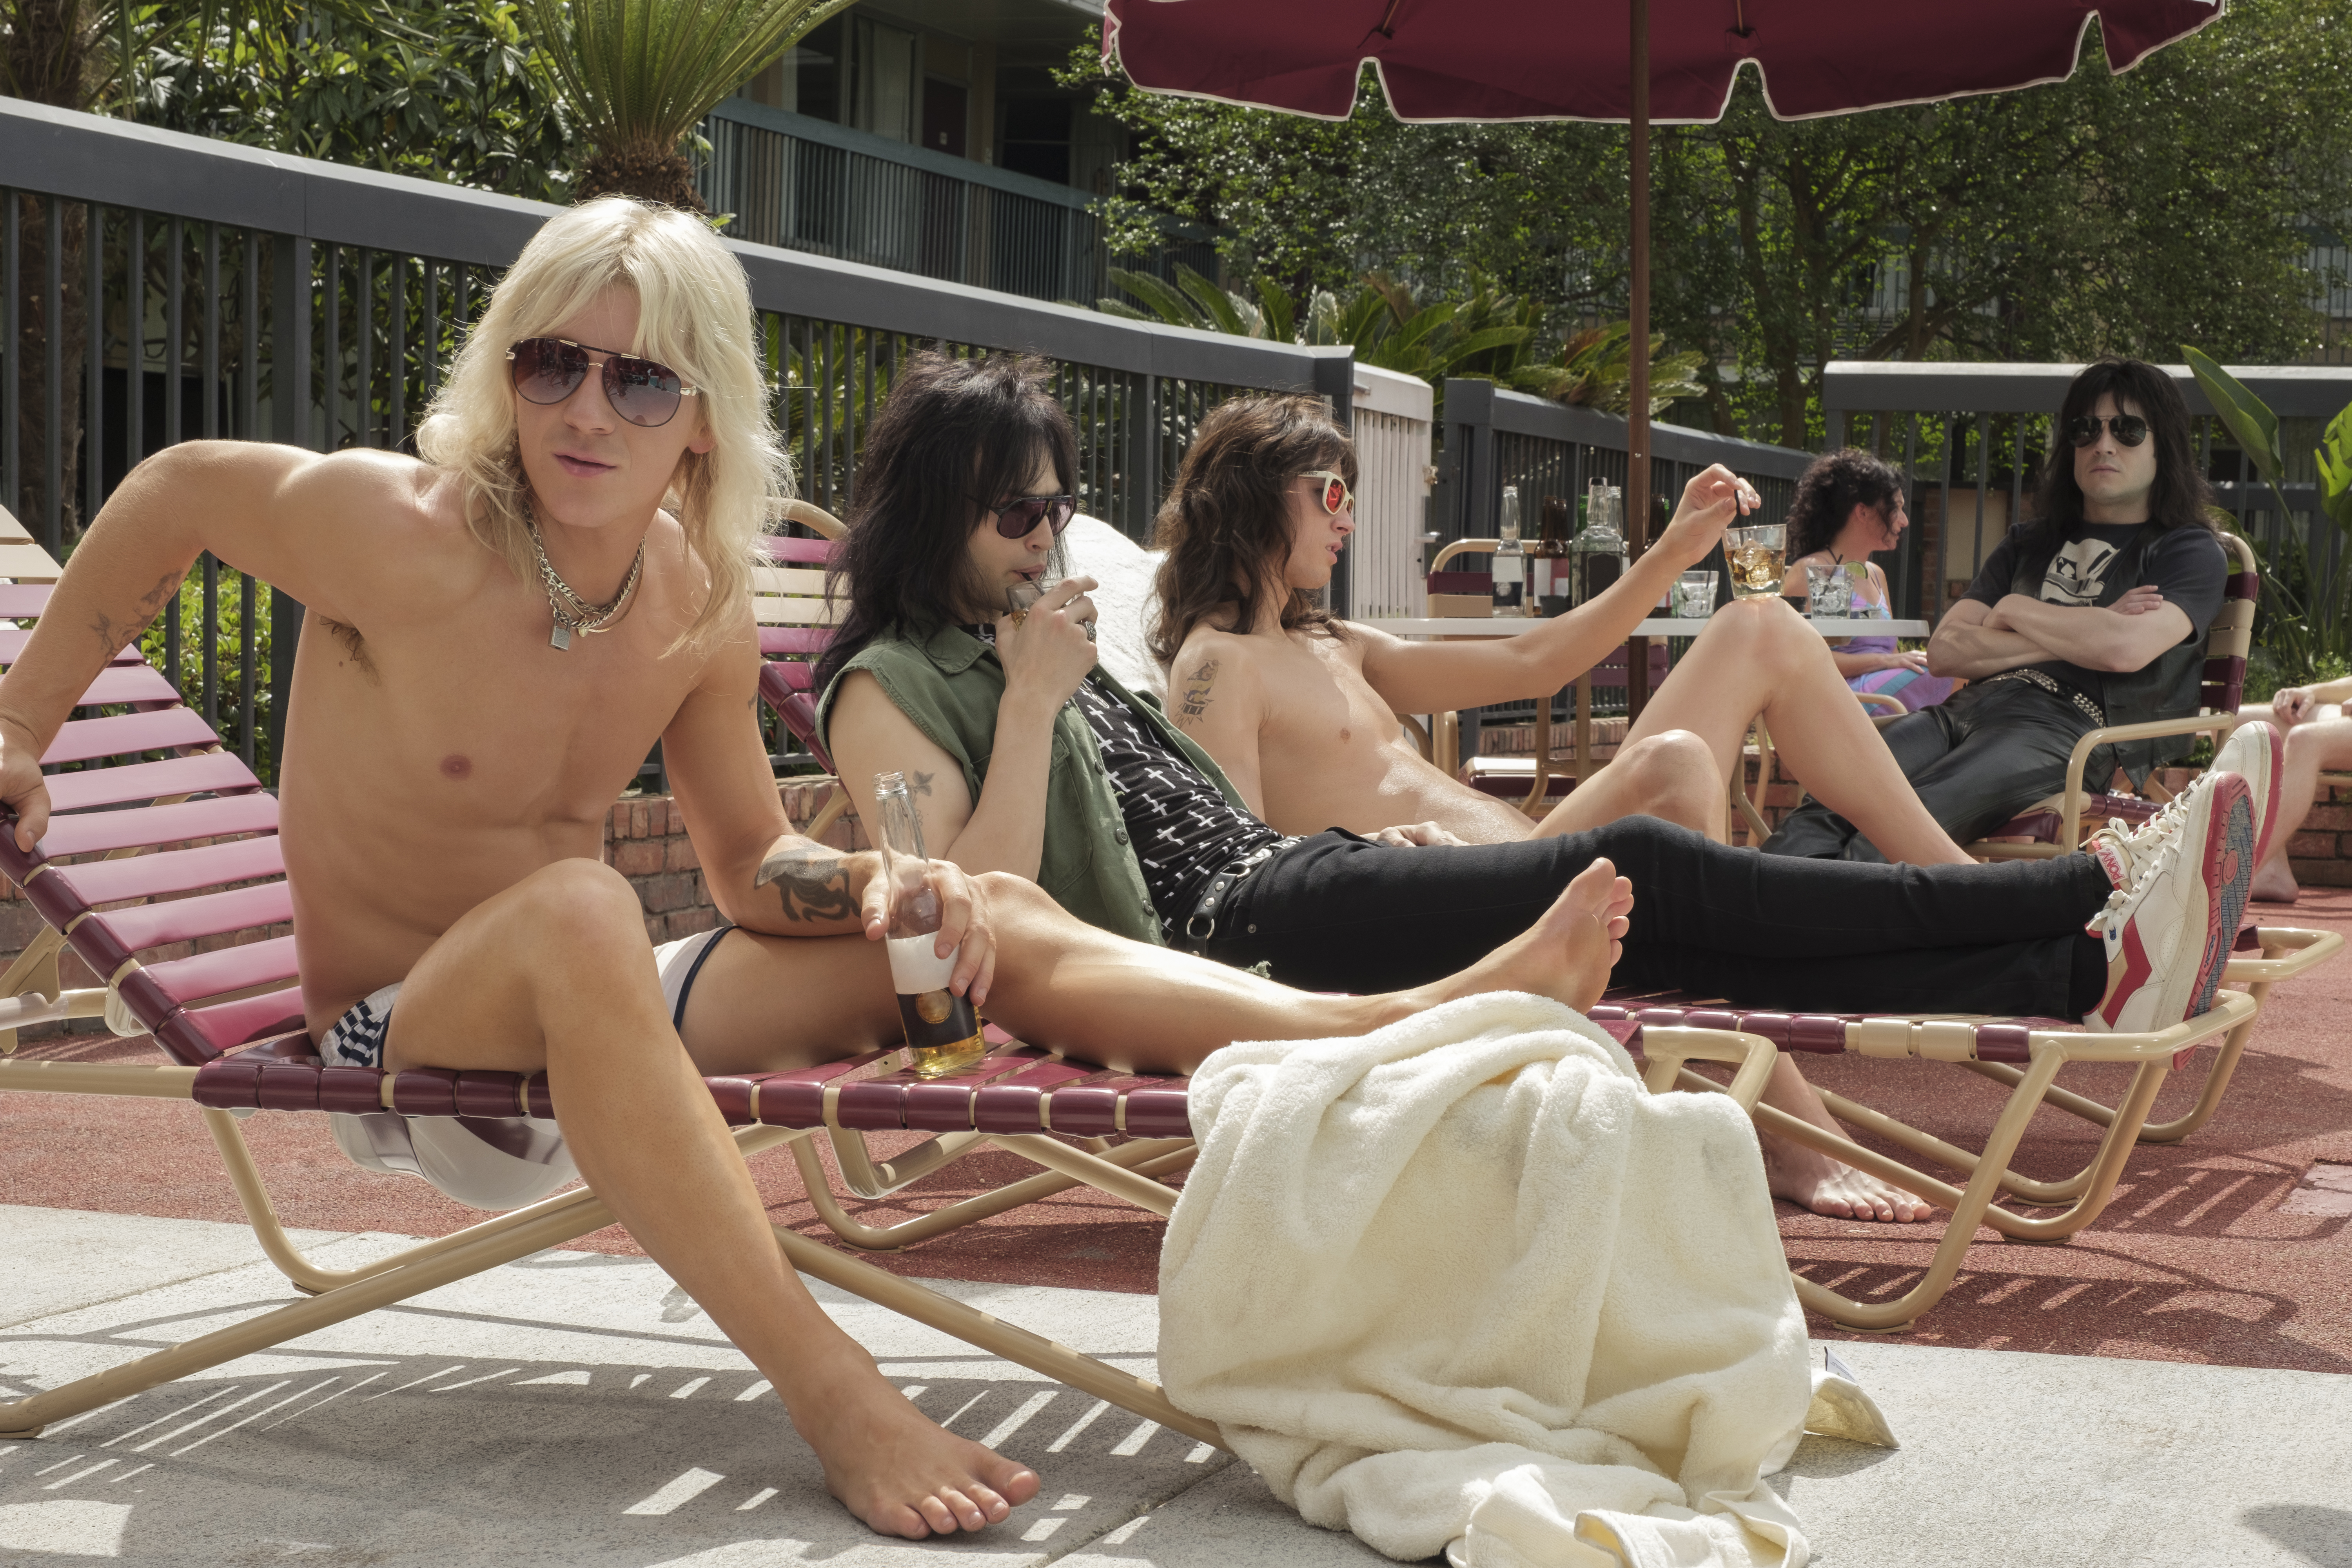 Netflix's The Dirt review: they somehow made Mötley Crüe boring